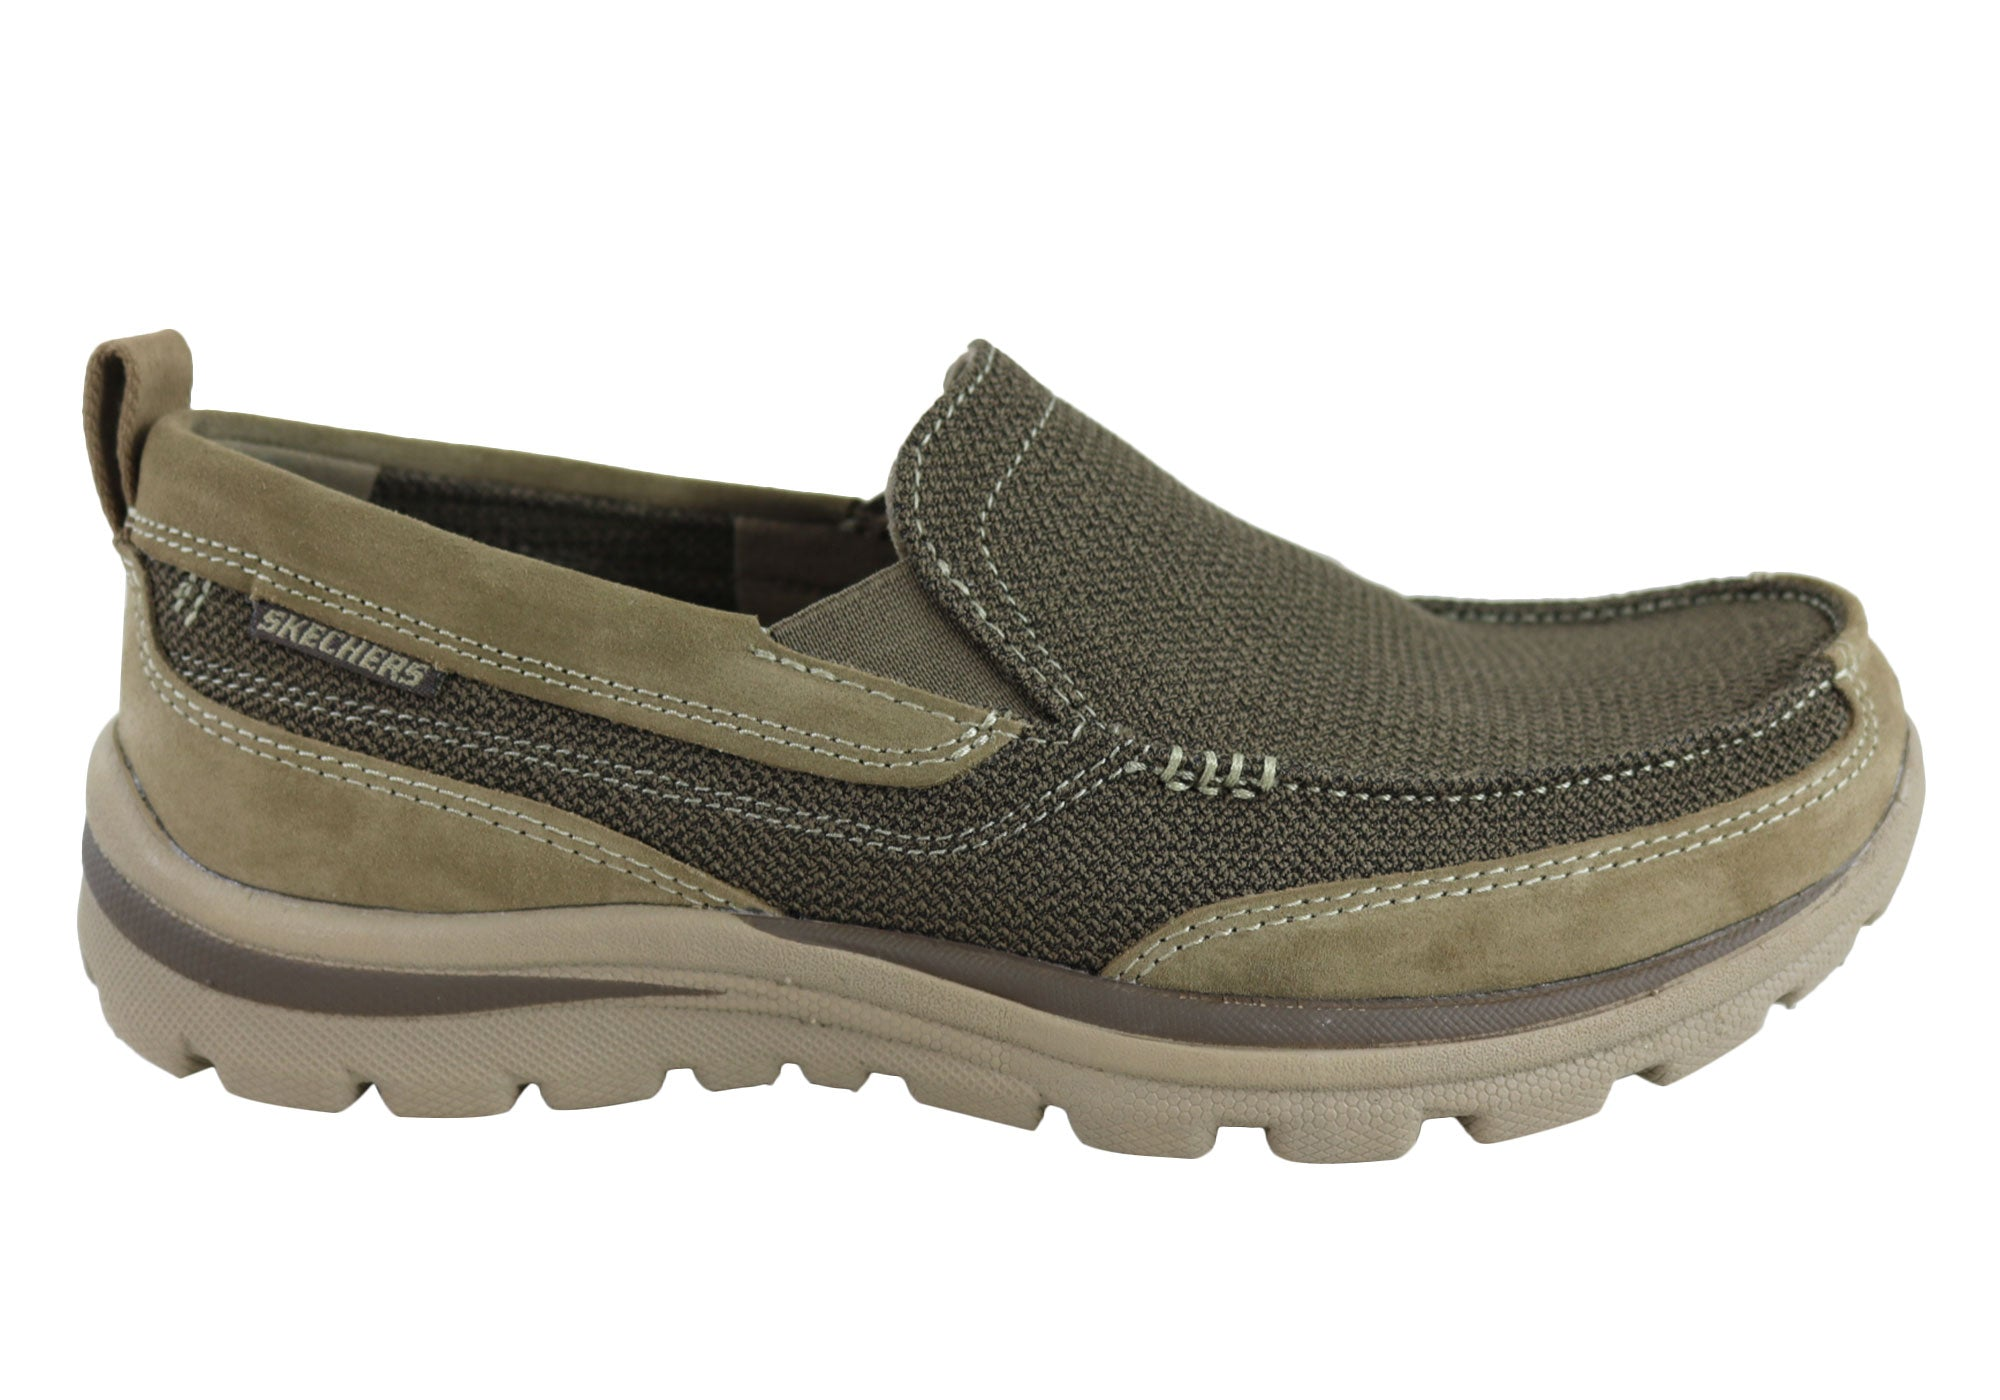 Skechers Superior Milford Uomo Comfortable Slip On Memory Foam Shoes Shoes Shoes 68659f